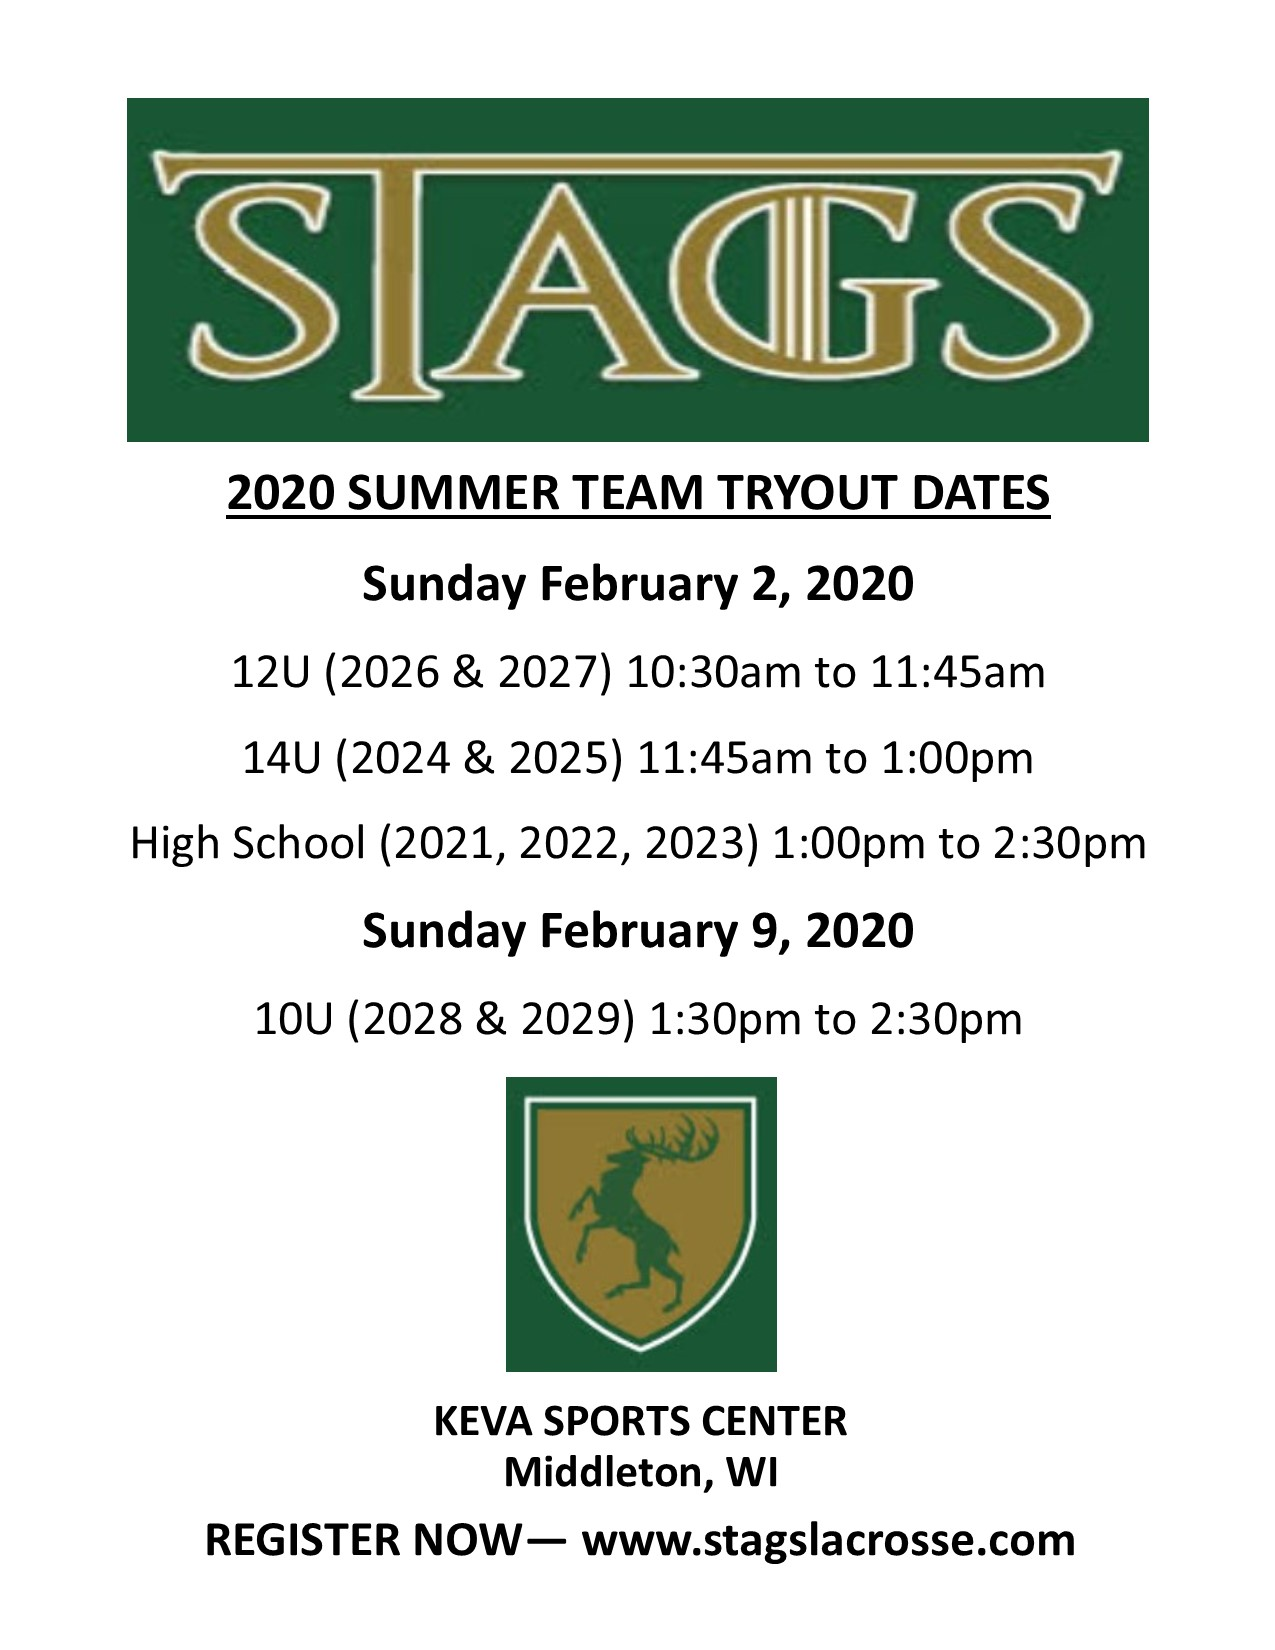 Stags summer 2020 tryout graphic